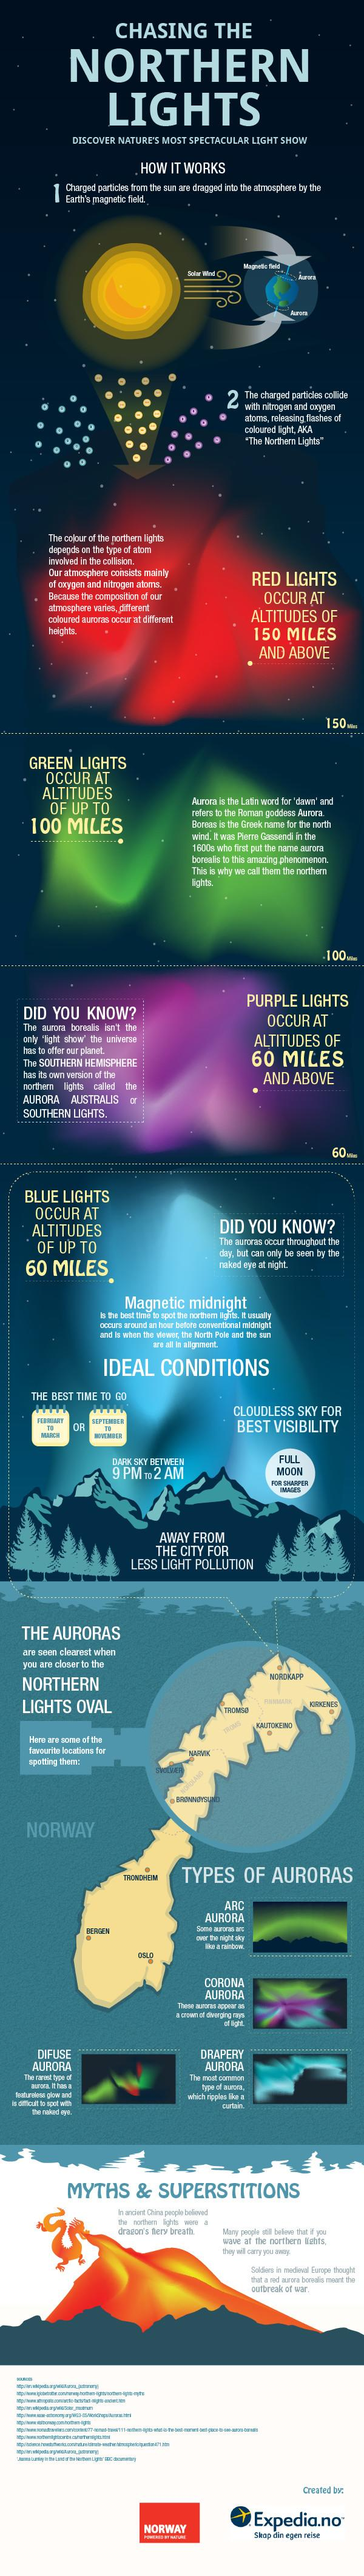 Northern lights infographic